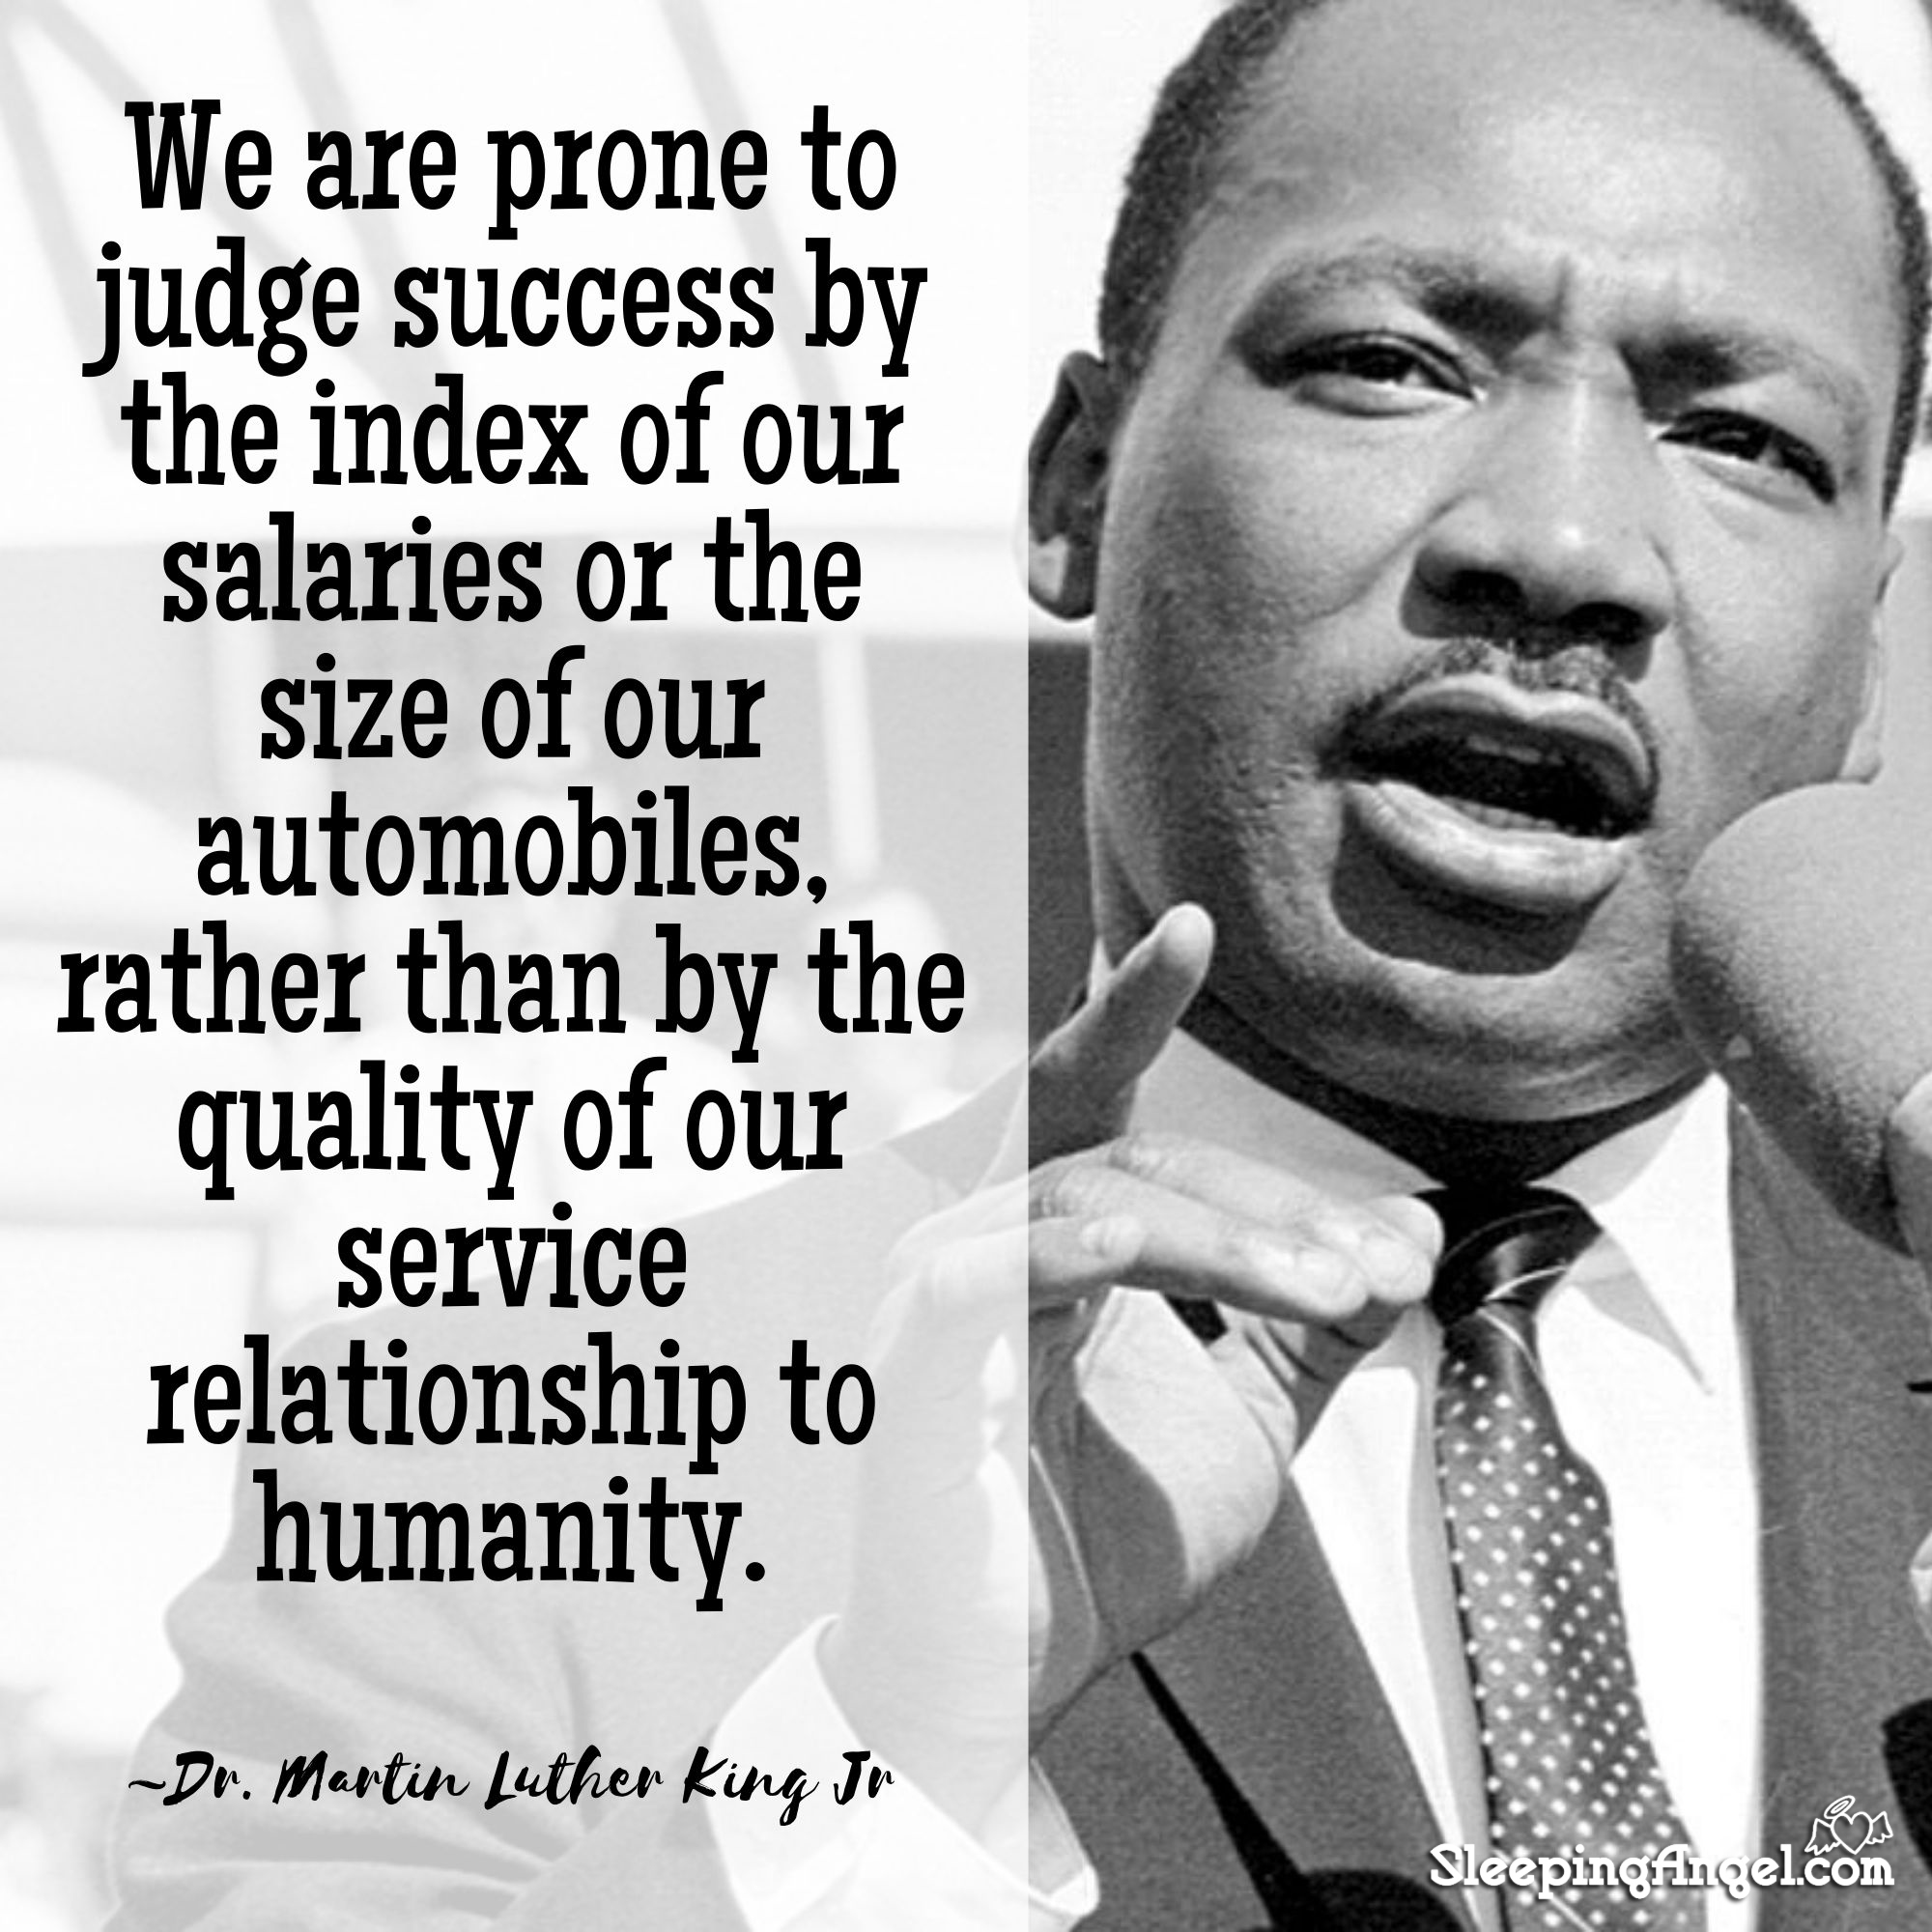 Dr. Martin Luther King Jr. Quote